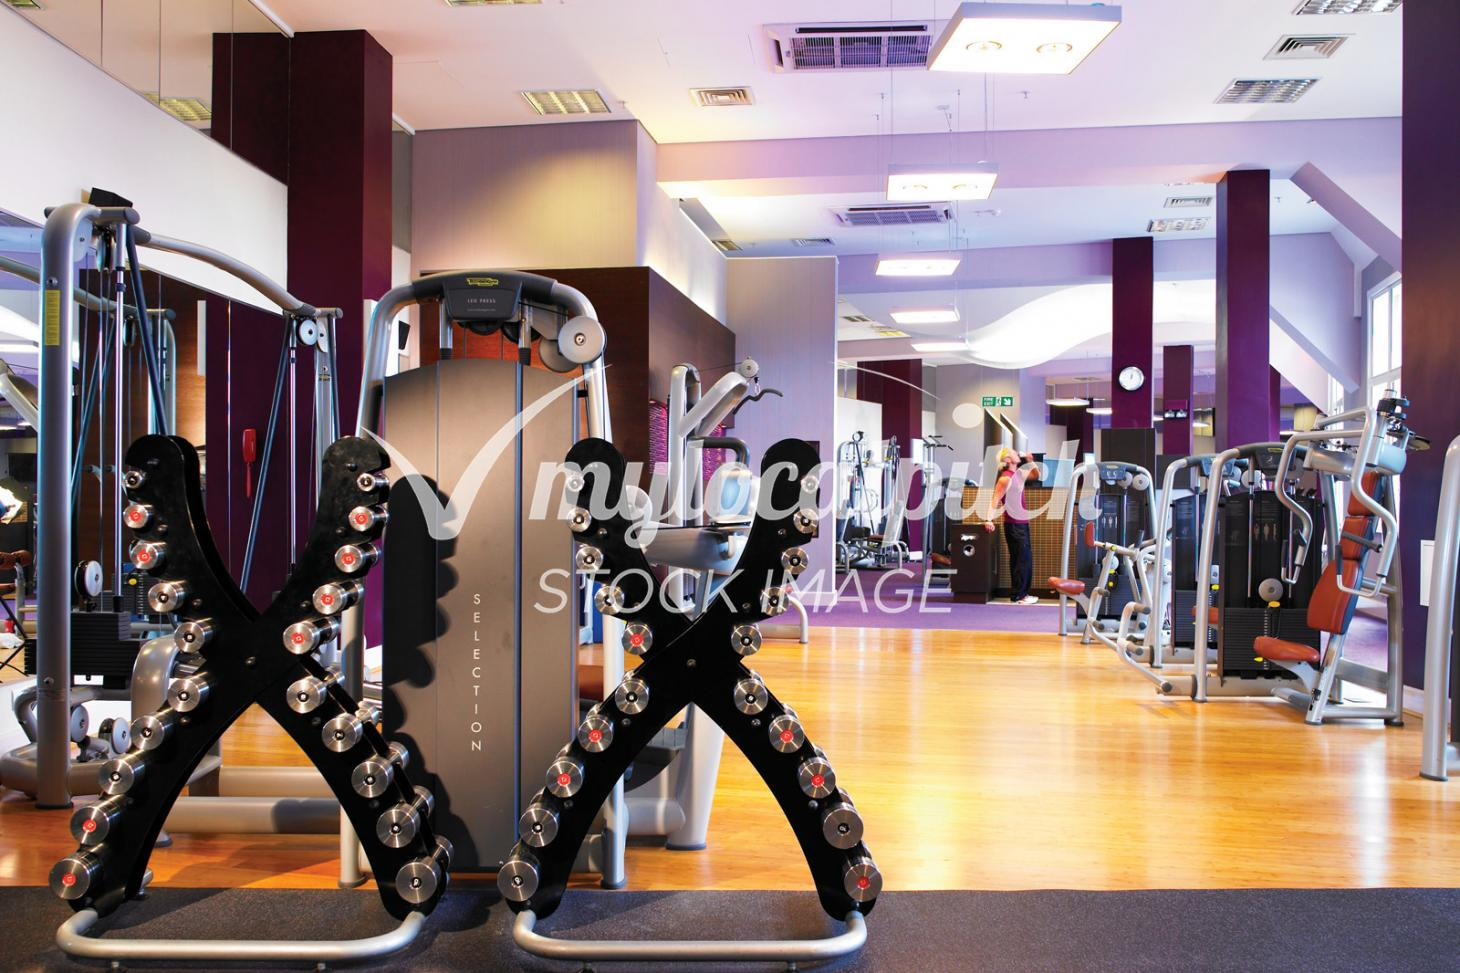 TruGym Bromley Indoor gym